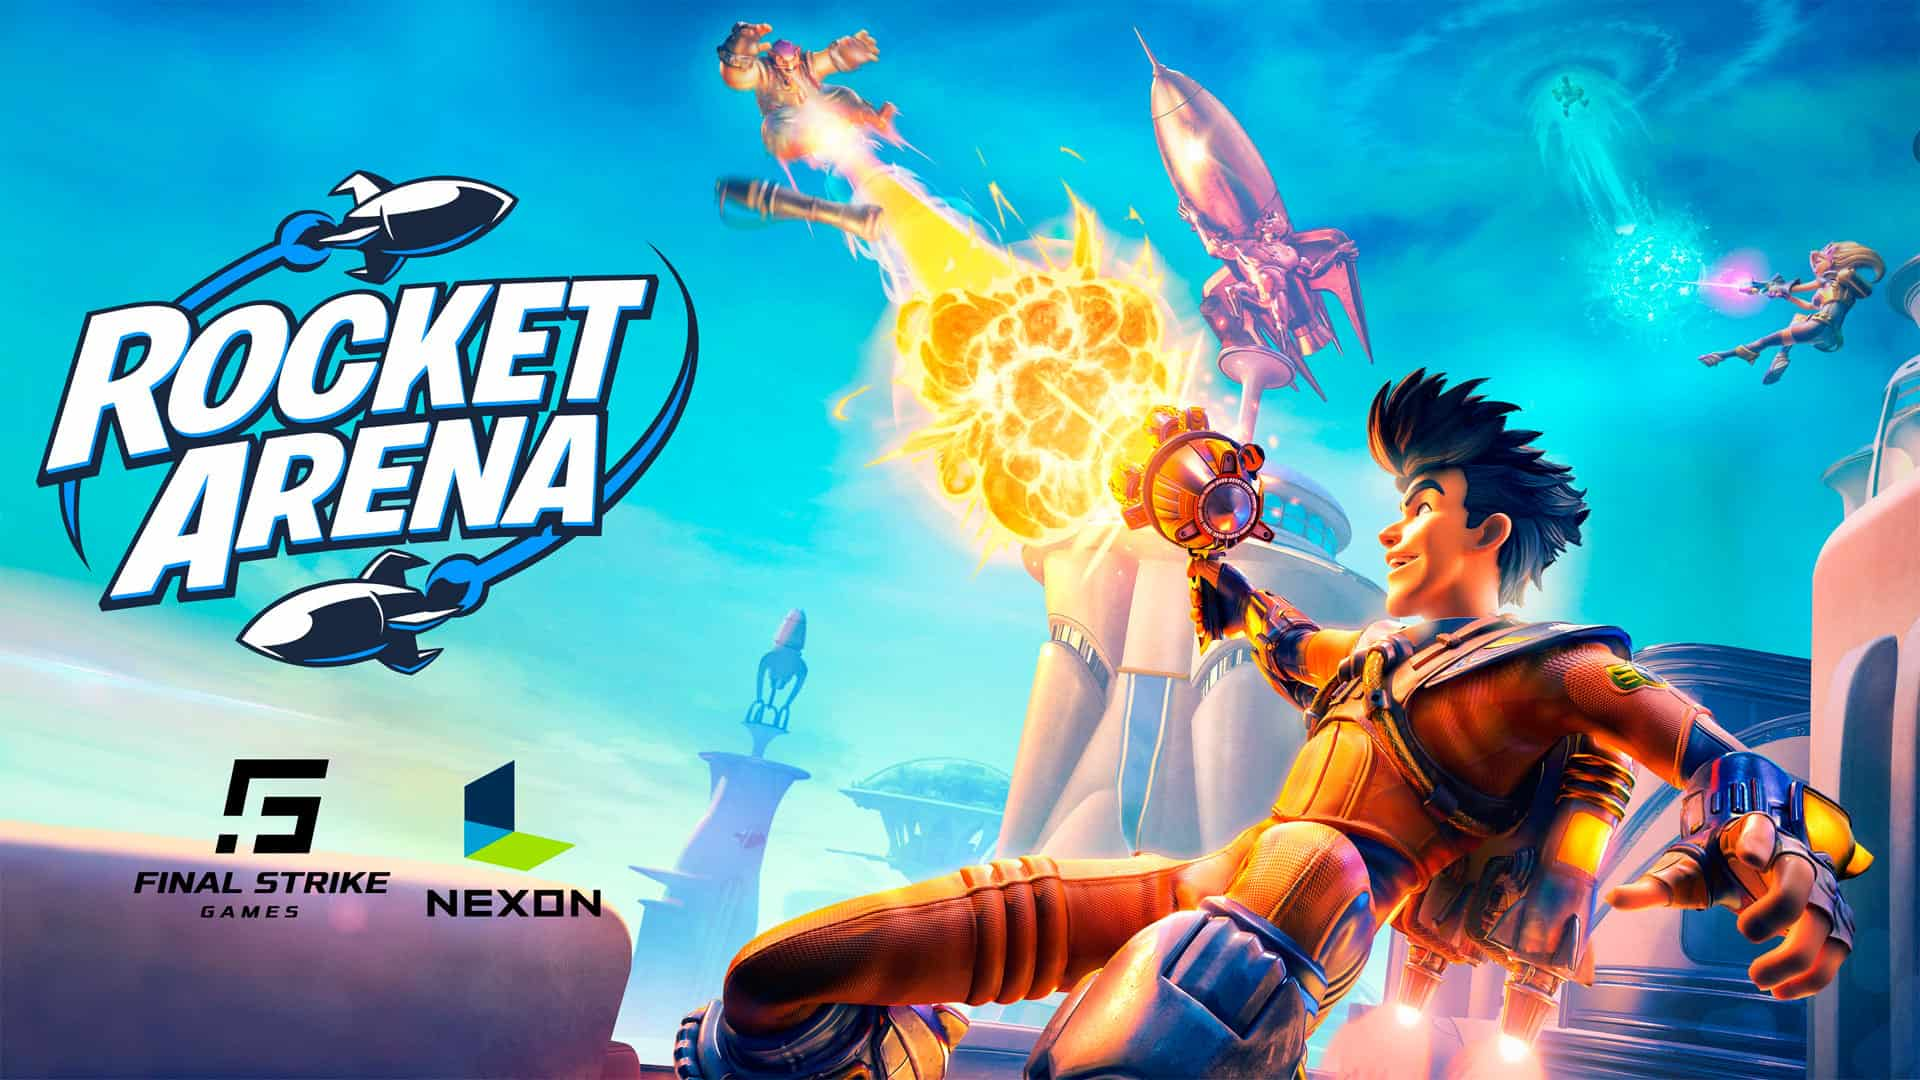 Nexon and Final Strike Games Reveal New Title, Rocket Arena, Entering Closed Beta May 23rd